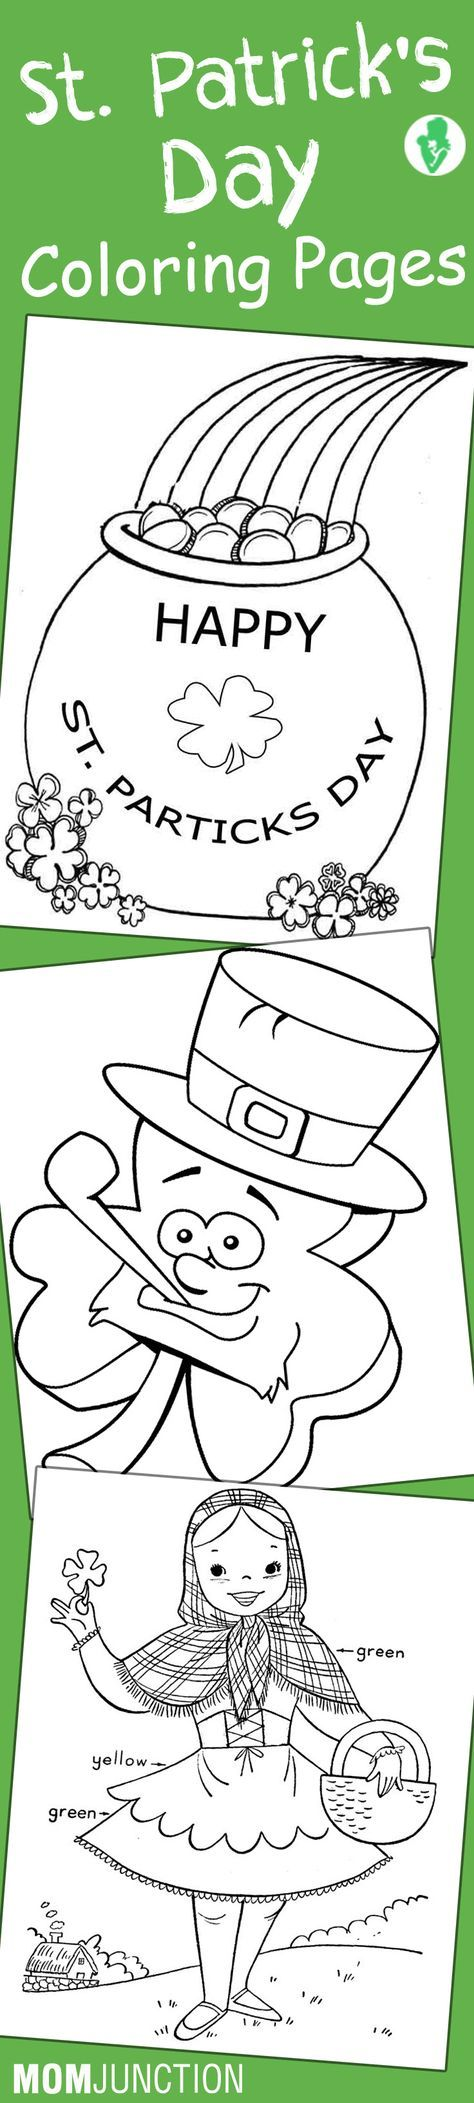 13 best Books for kids images on Pinterest | Coloring books ...